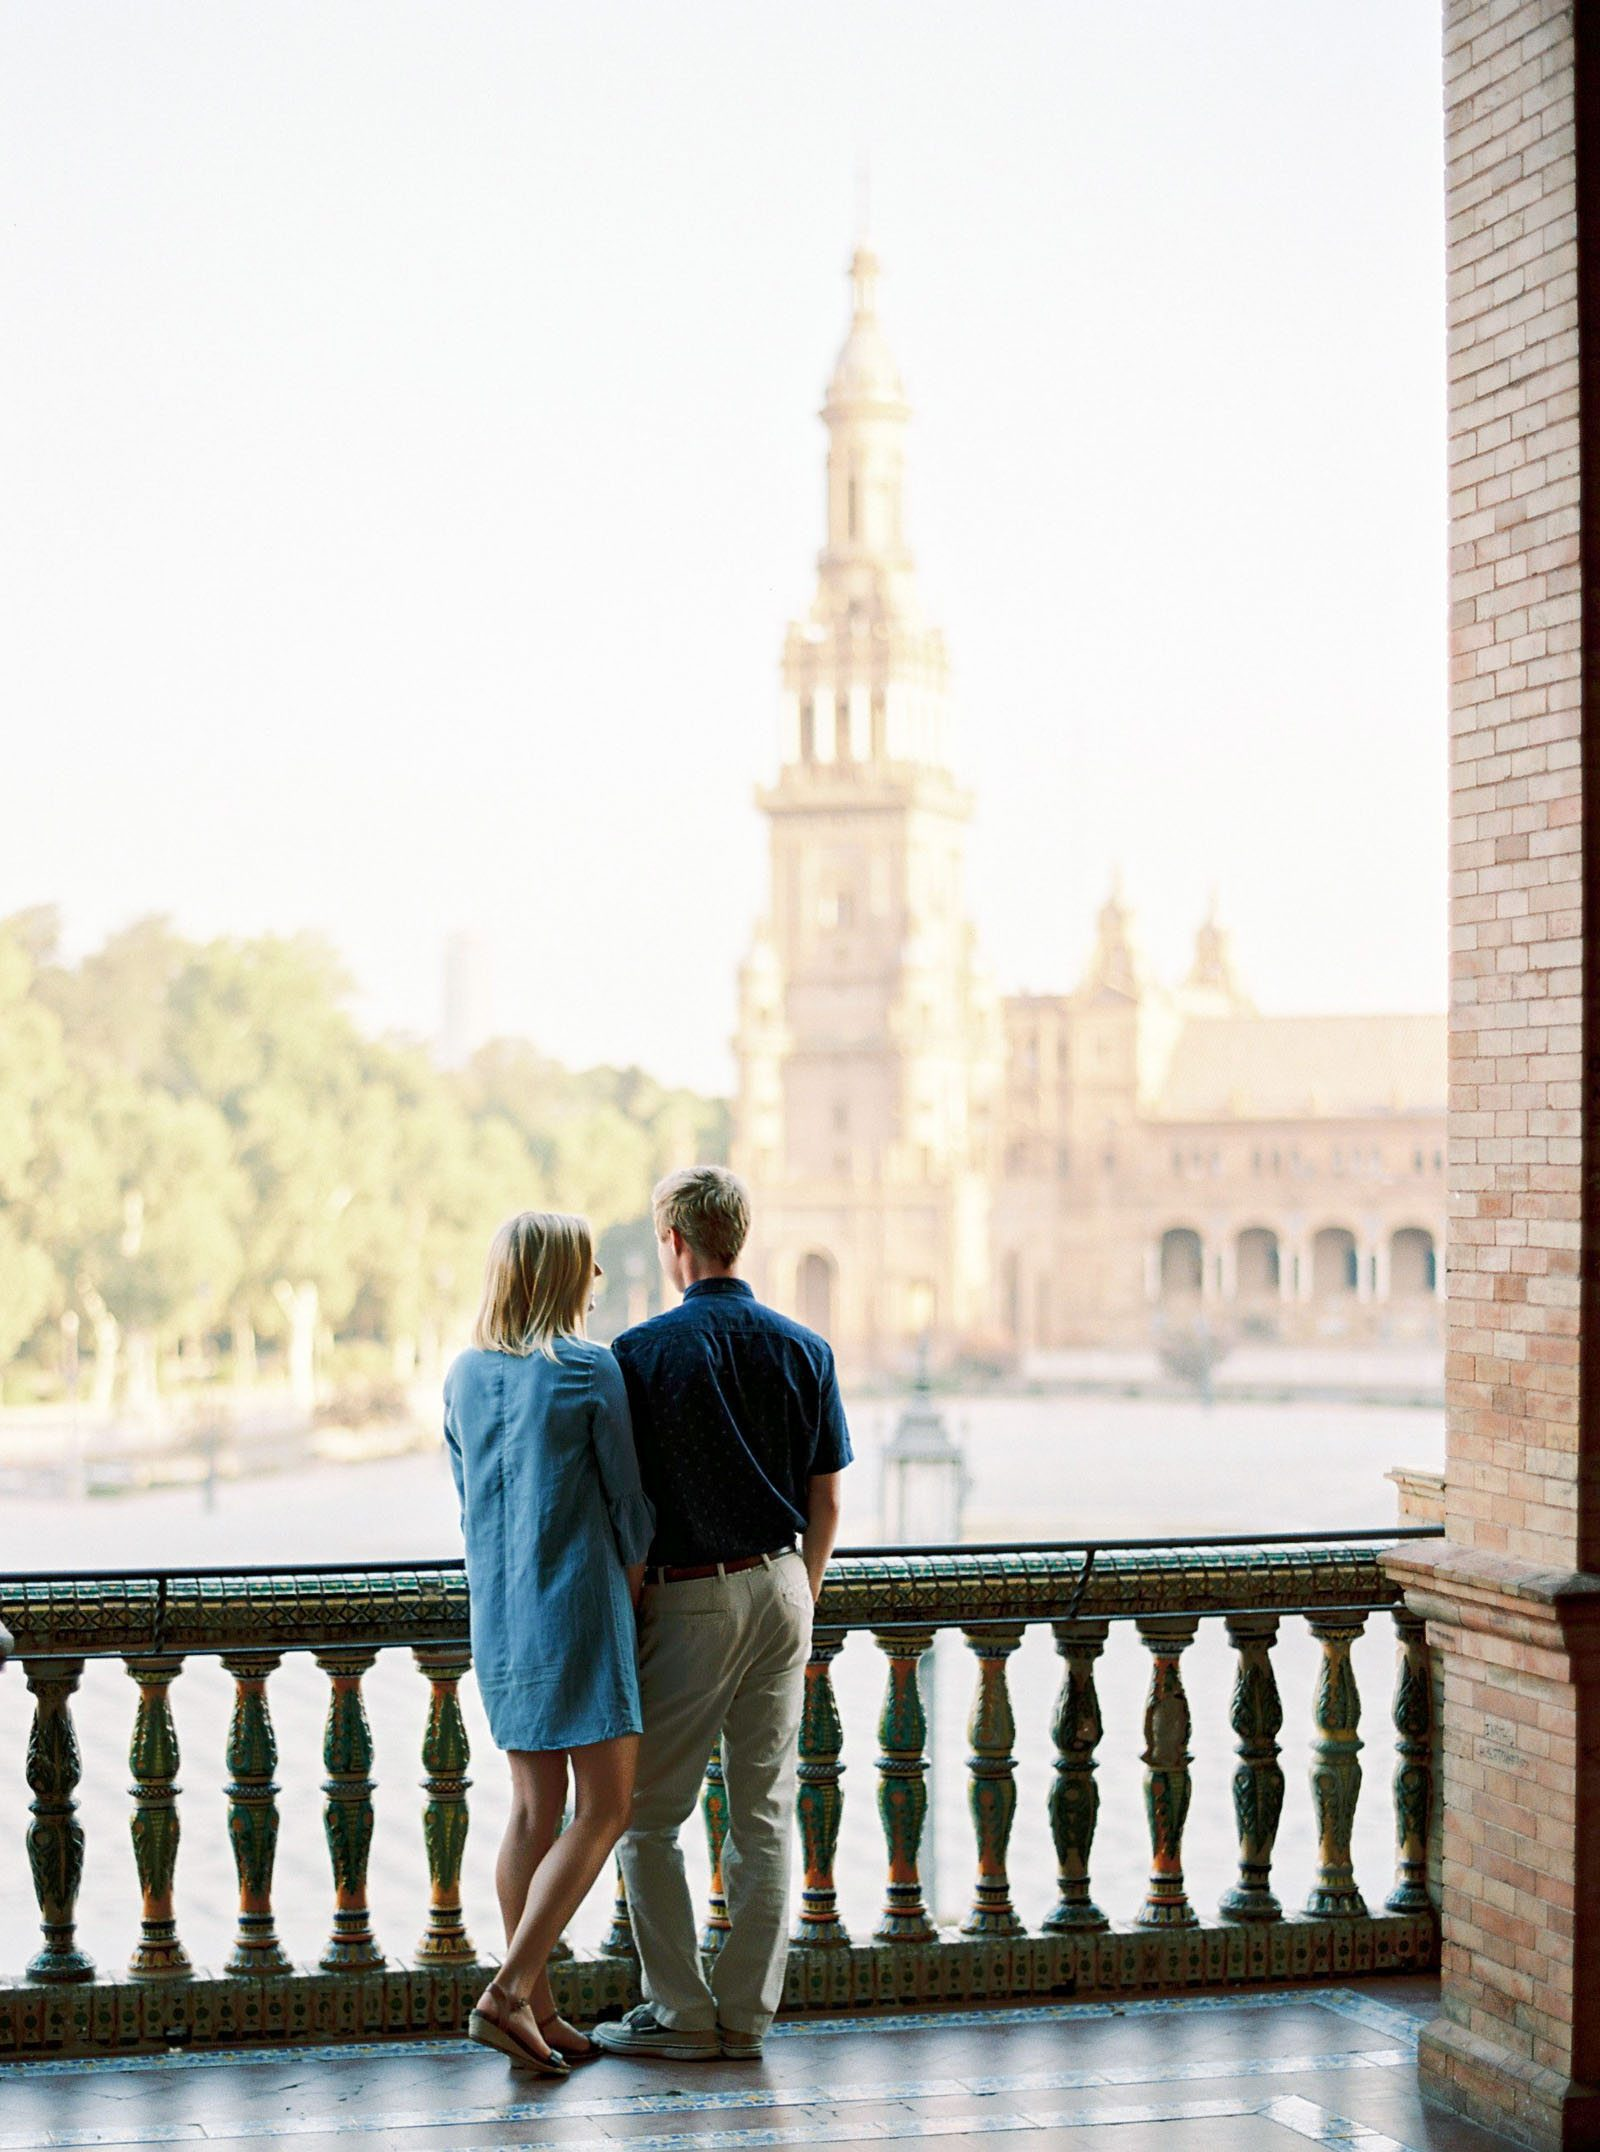 Anniversary Photos in Seville, Spain | K. R. Moreno